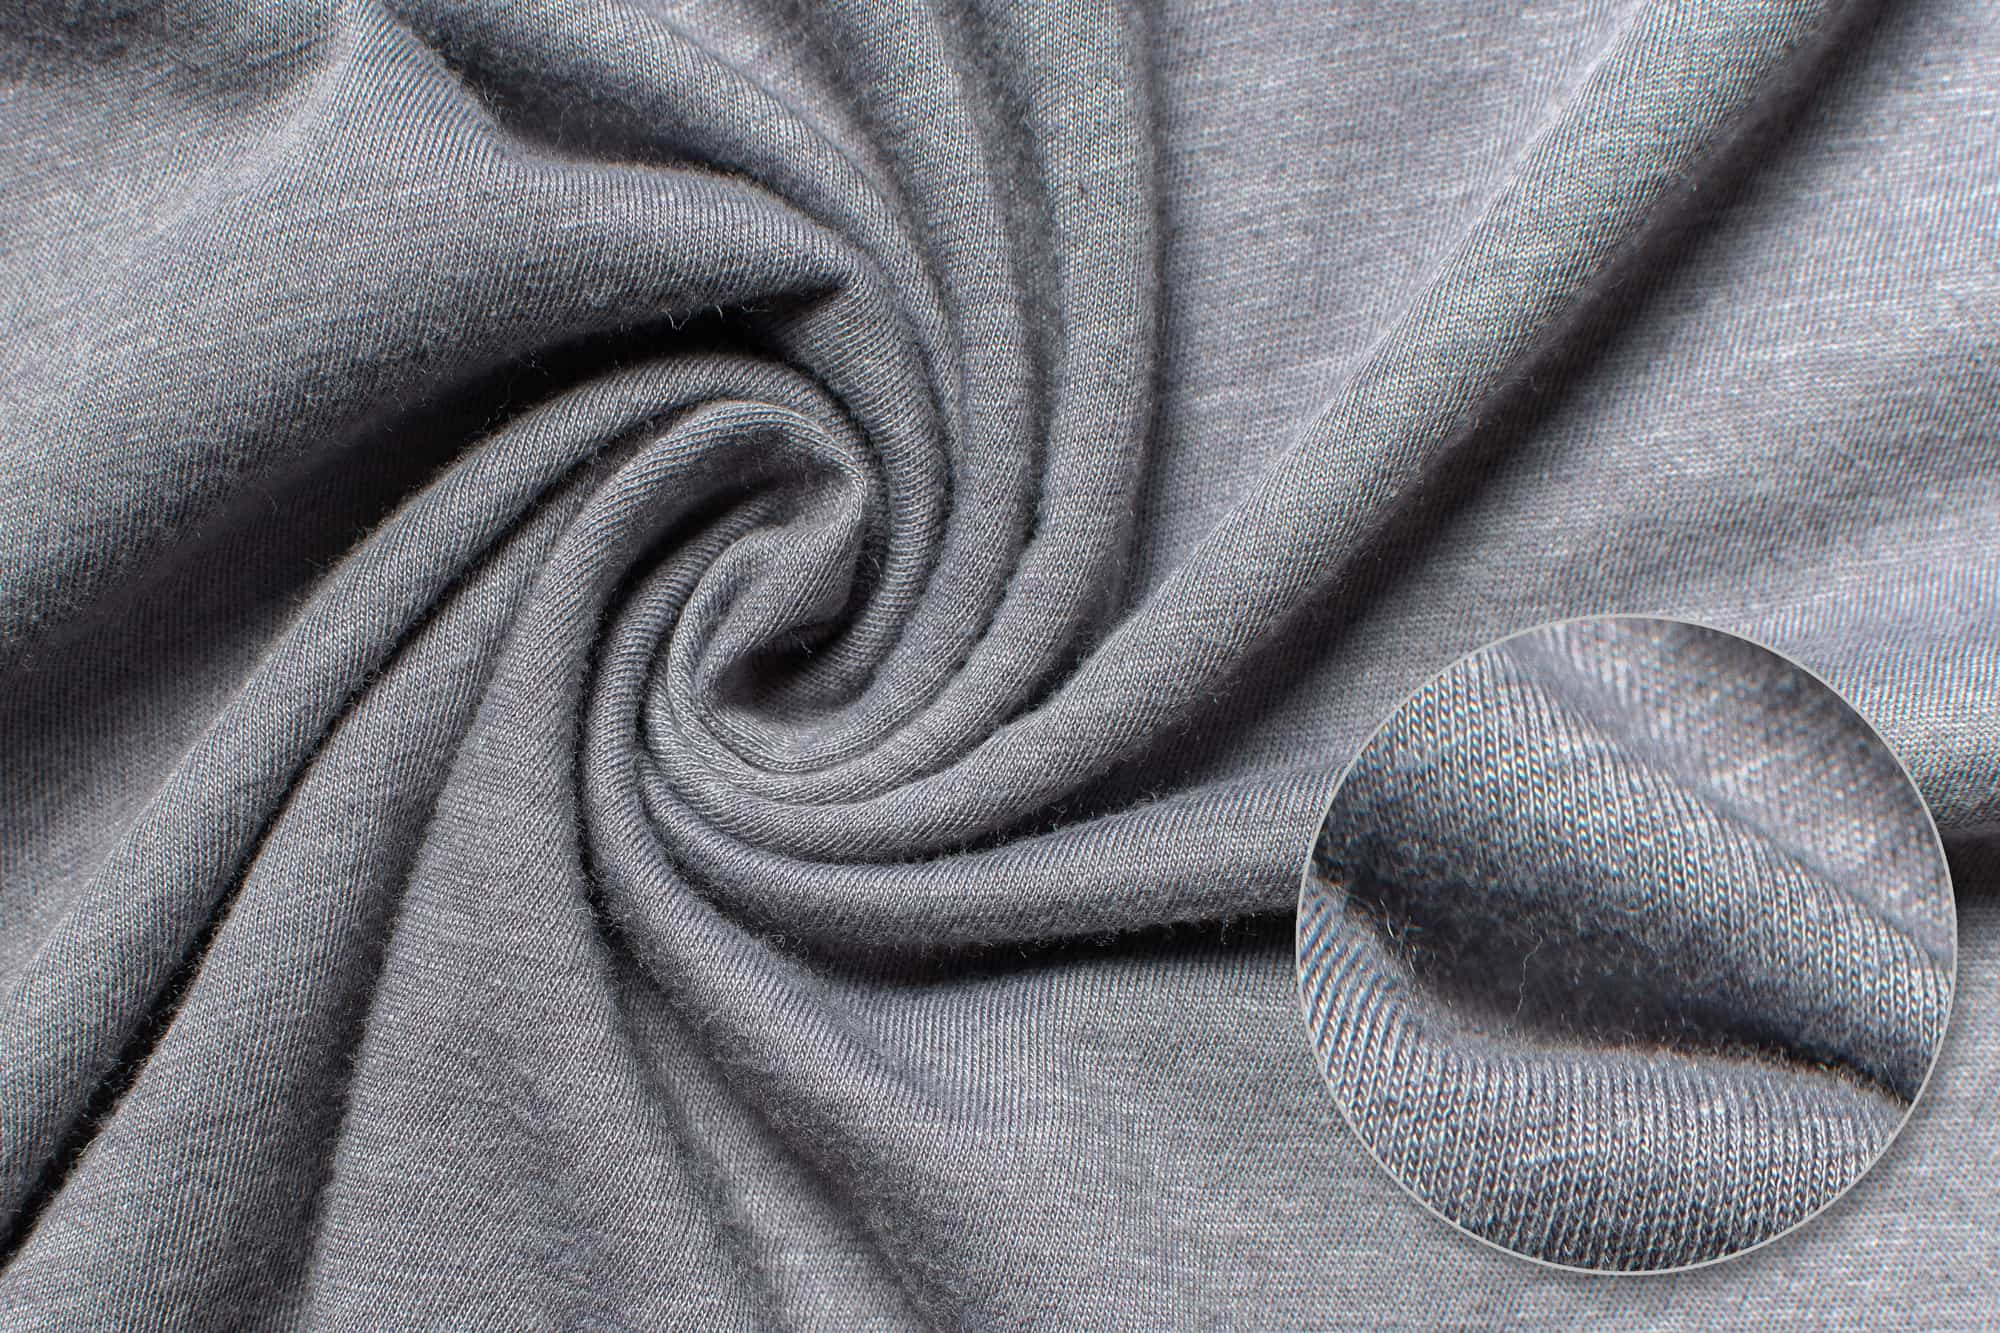 Fabric detail of the Bella Canvas Triblend Jersey T-Shirt.